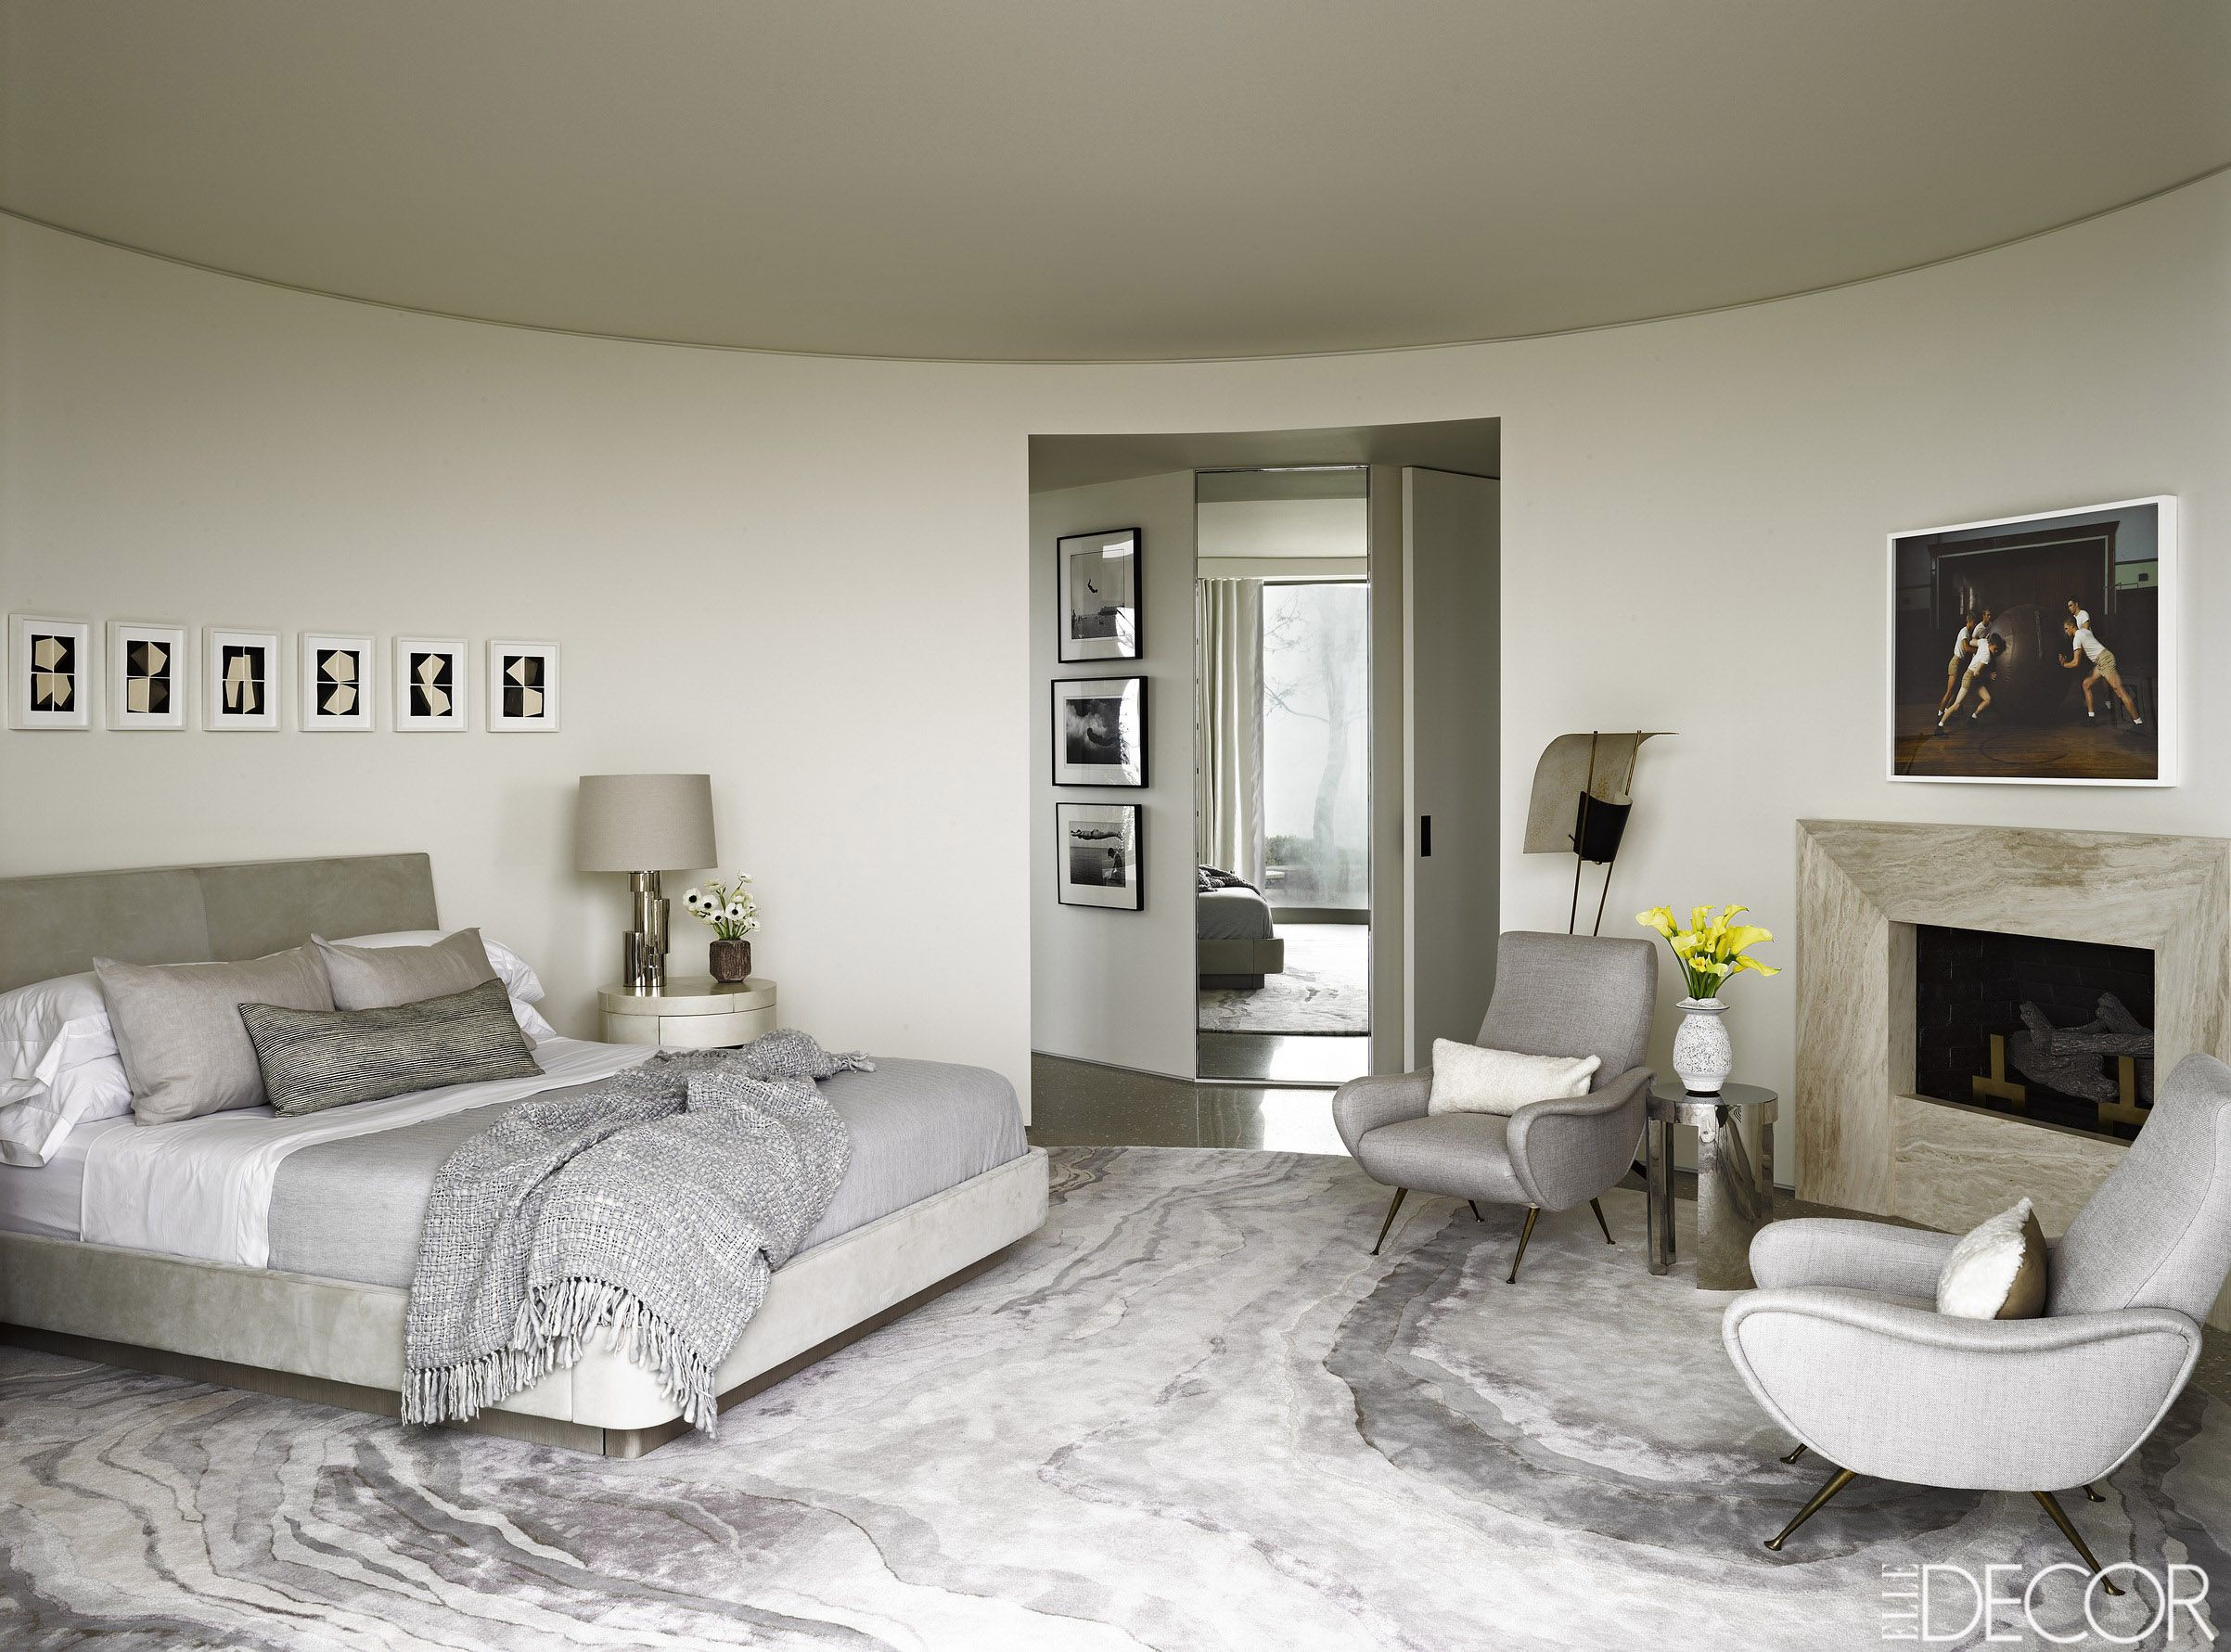 Pictures Beautiful of rooms foto